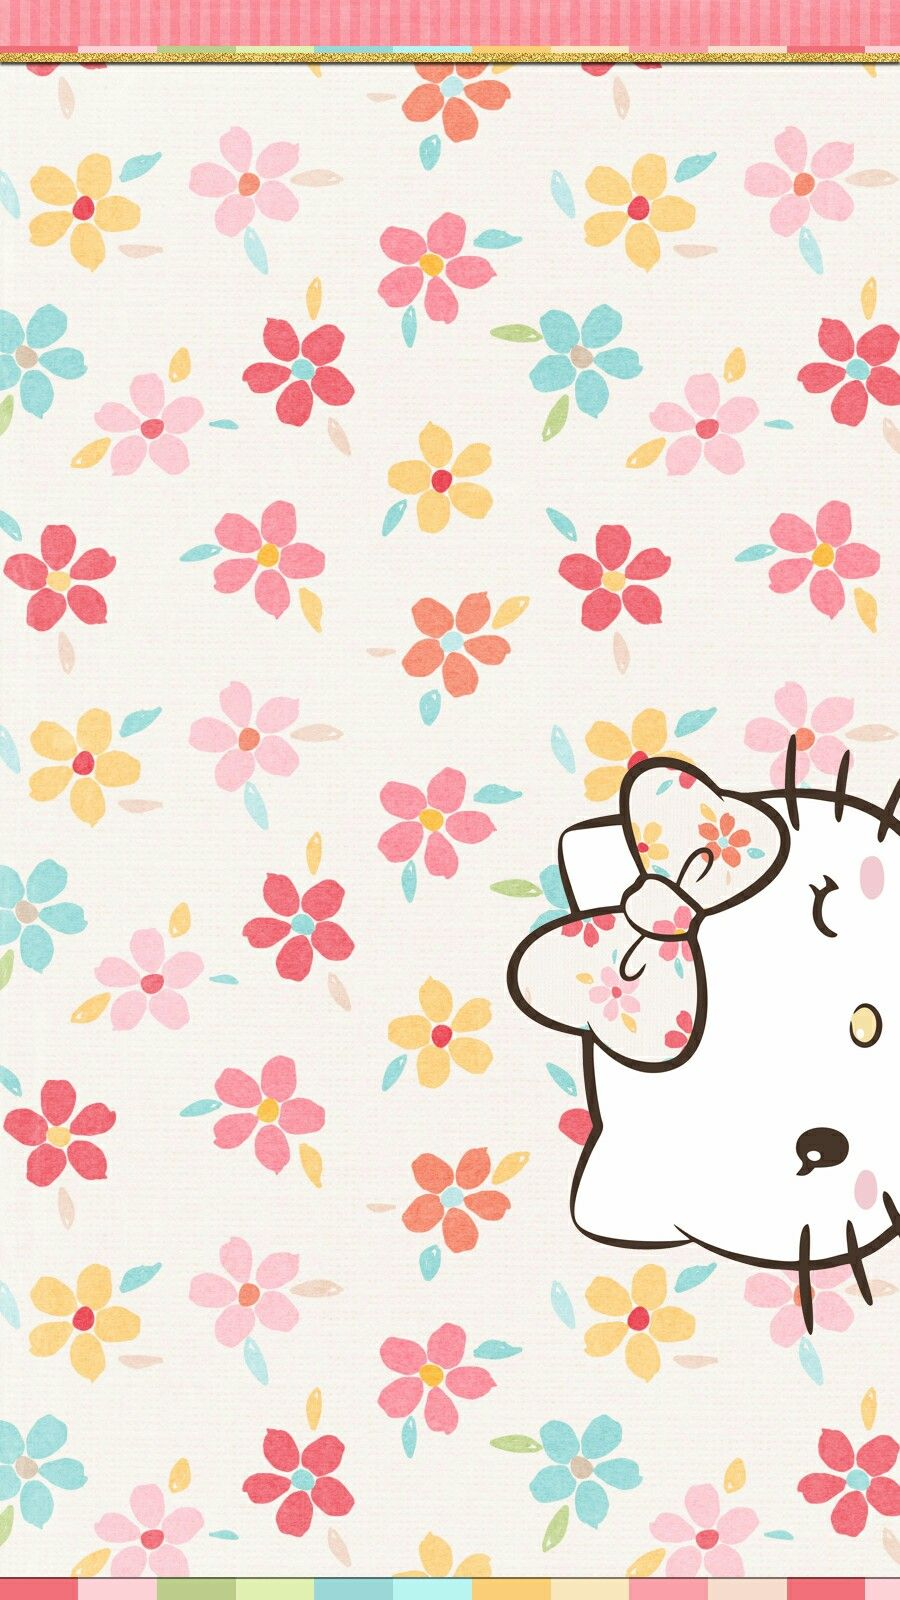 Simple Wallpaper Hello Kitty Spring - f3bf4071a86467b97248a71ac19abbfe  Image_631491.jpg